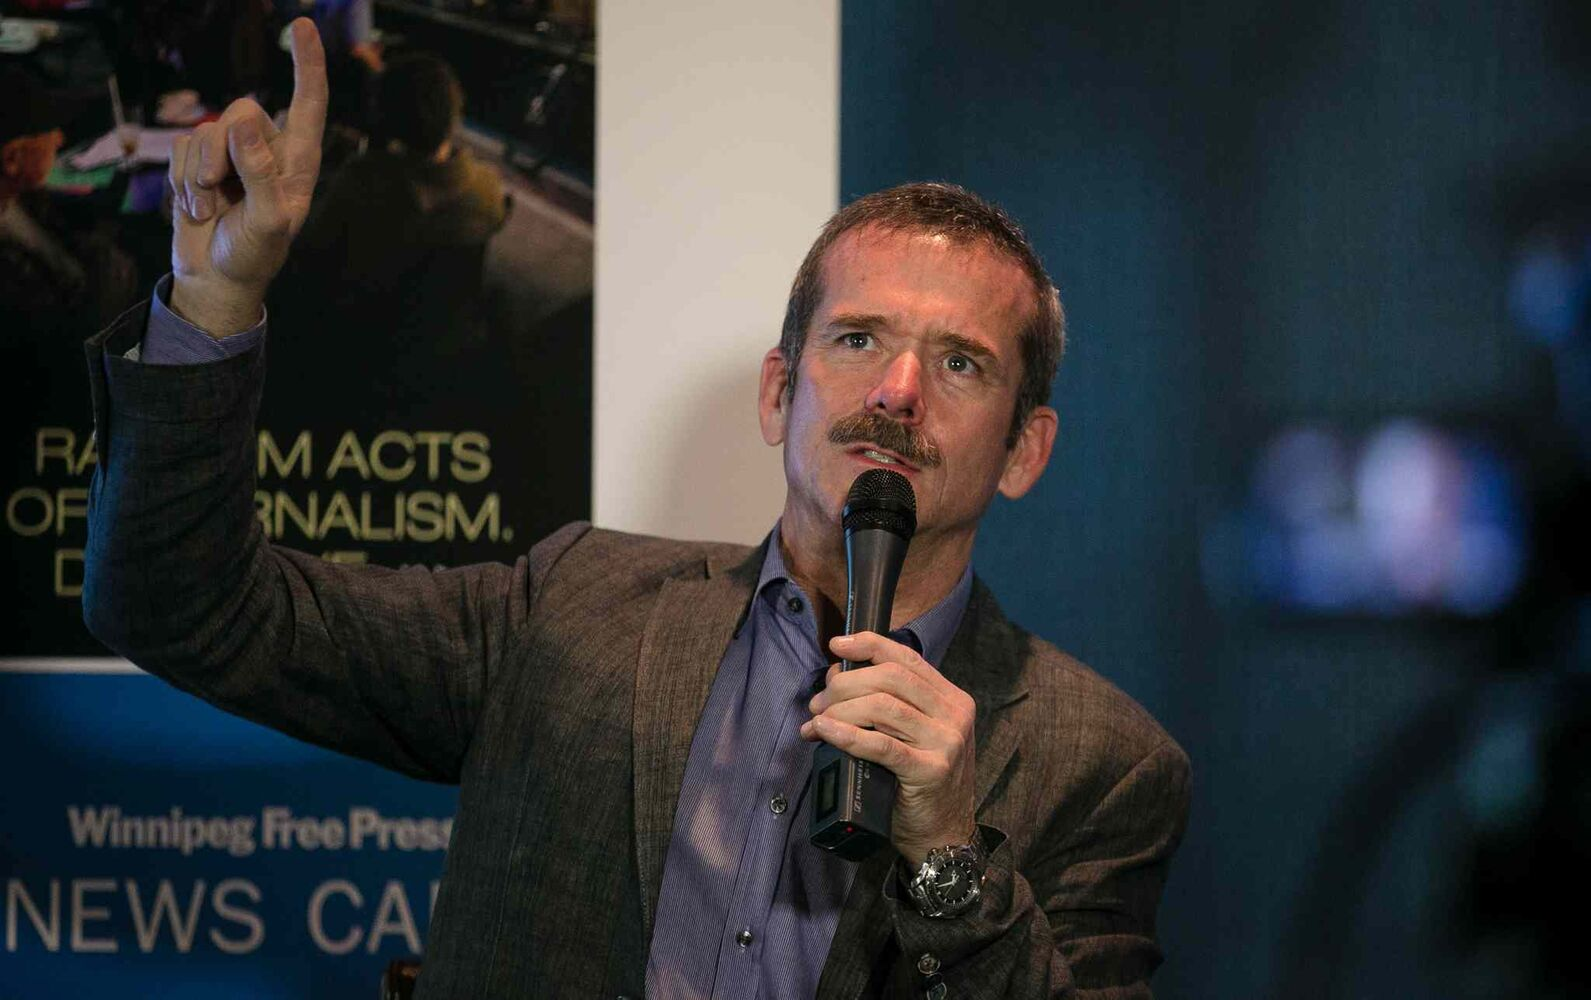 Hadfield, the now-retired astronaut who chronicled life aboard the International Space Station and posted pictures and videos on Facebook and Twitter, is on a tour to promote his new book An Astronaut's Guide to Life on Earth. (Melissa Tait / Winnipeg Free Press)